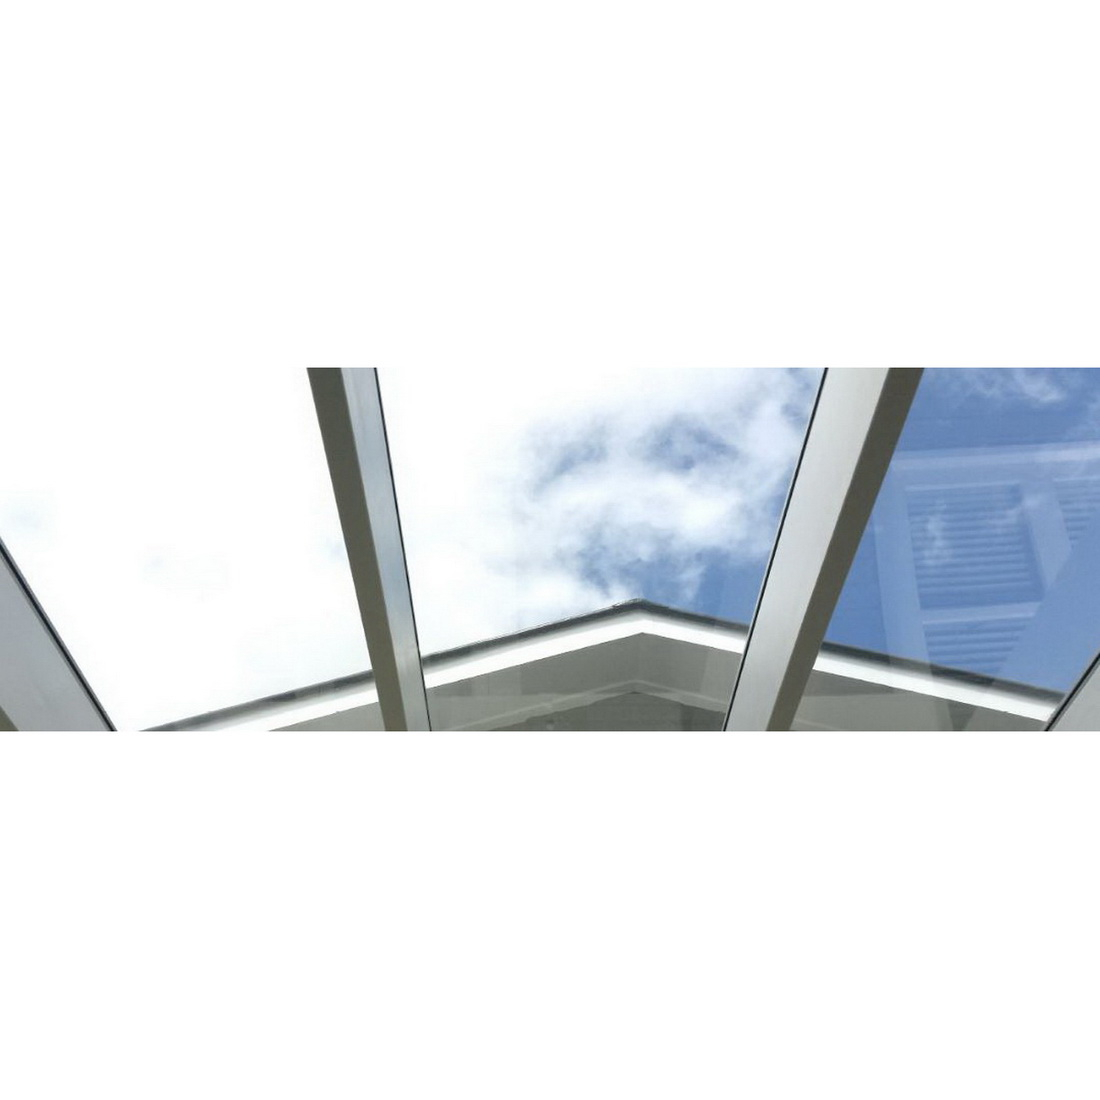 CLEARVUE Roofing Panel 5100 x 586 x 6mm Grey CLV-06.0-GRY-5100X6